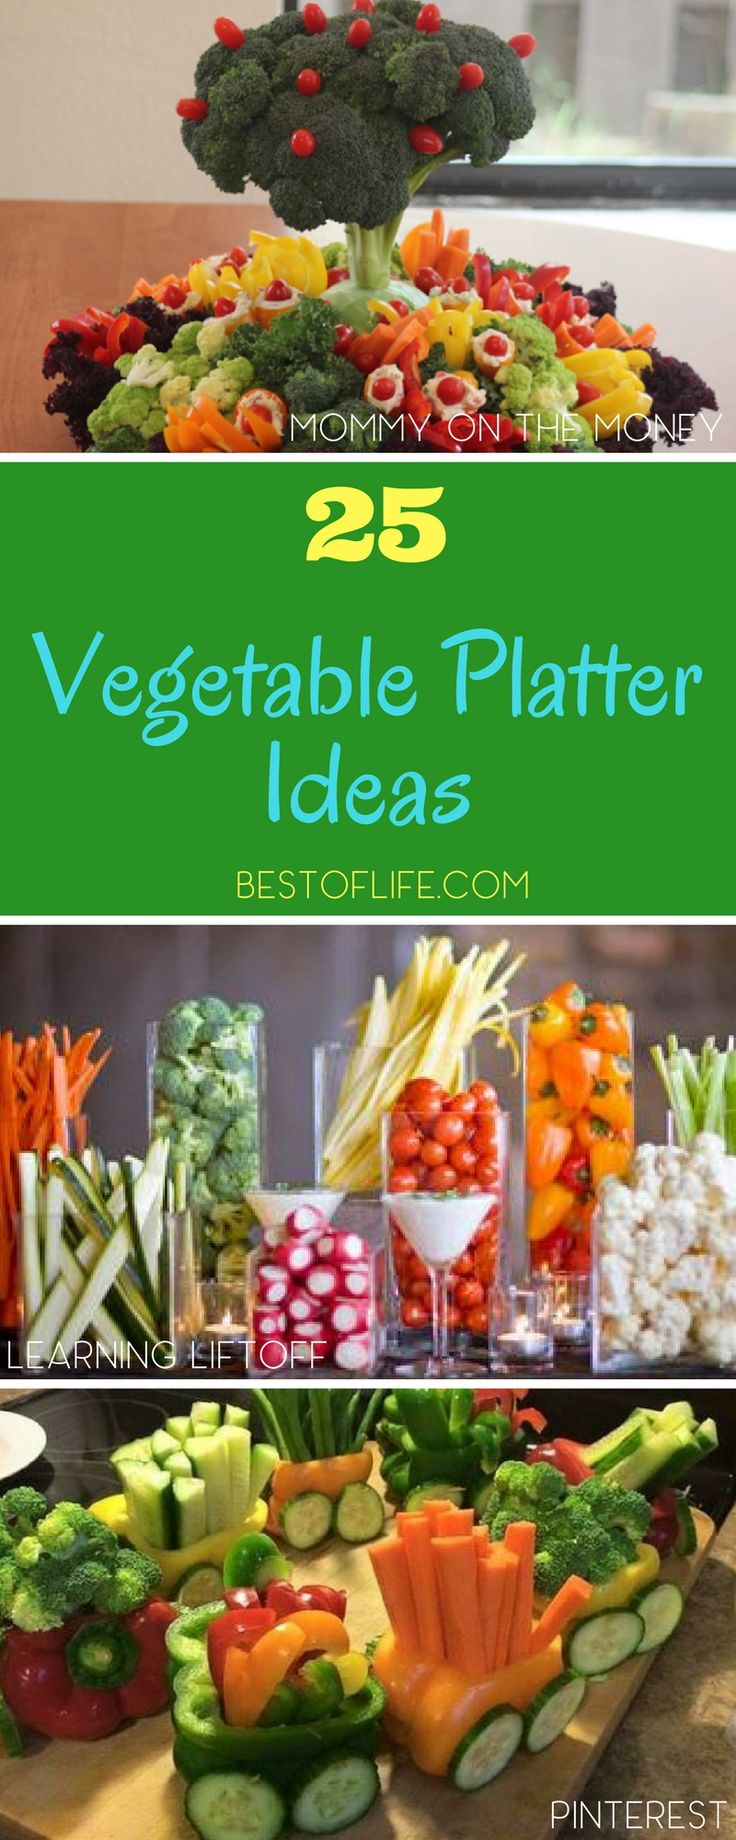 Whether entertaining a few friends, your family, or a crowd, a vegetable platter is a must have party food! These vegetable platter ideas will help you display them perfectly for the occasion. Vegetable Platter Display | Vegetable Platter Guide | Entertaining Tips | Party Food | Party Ideas | Party Food Ideas for a Crowd | Easy Party Food Ideas